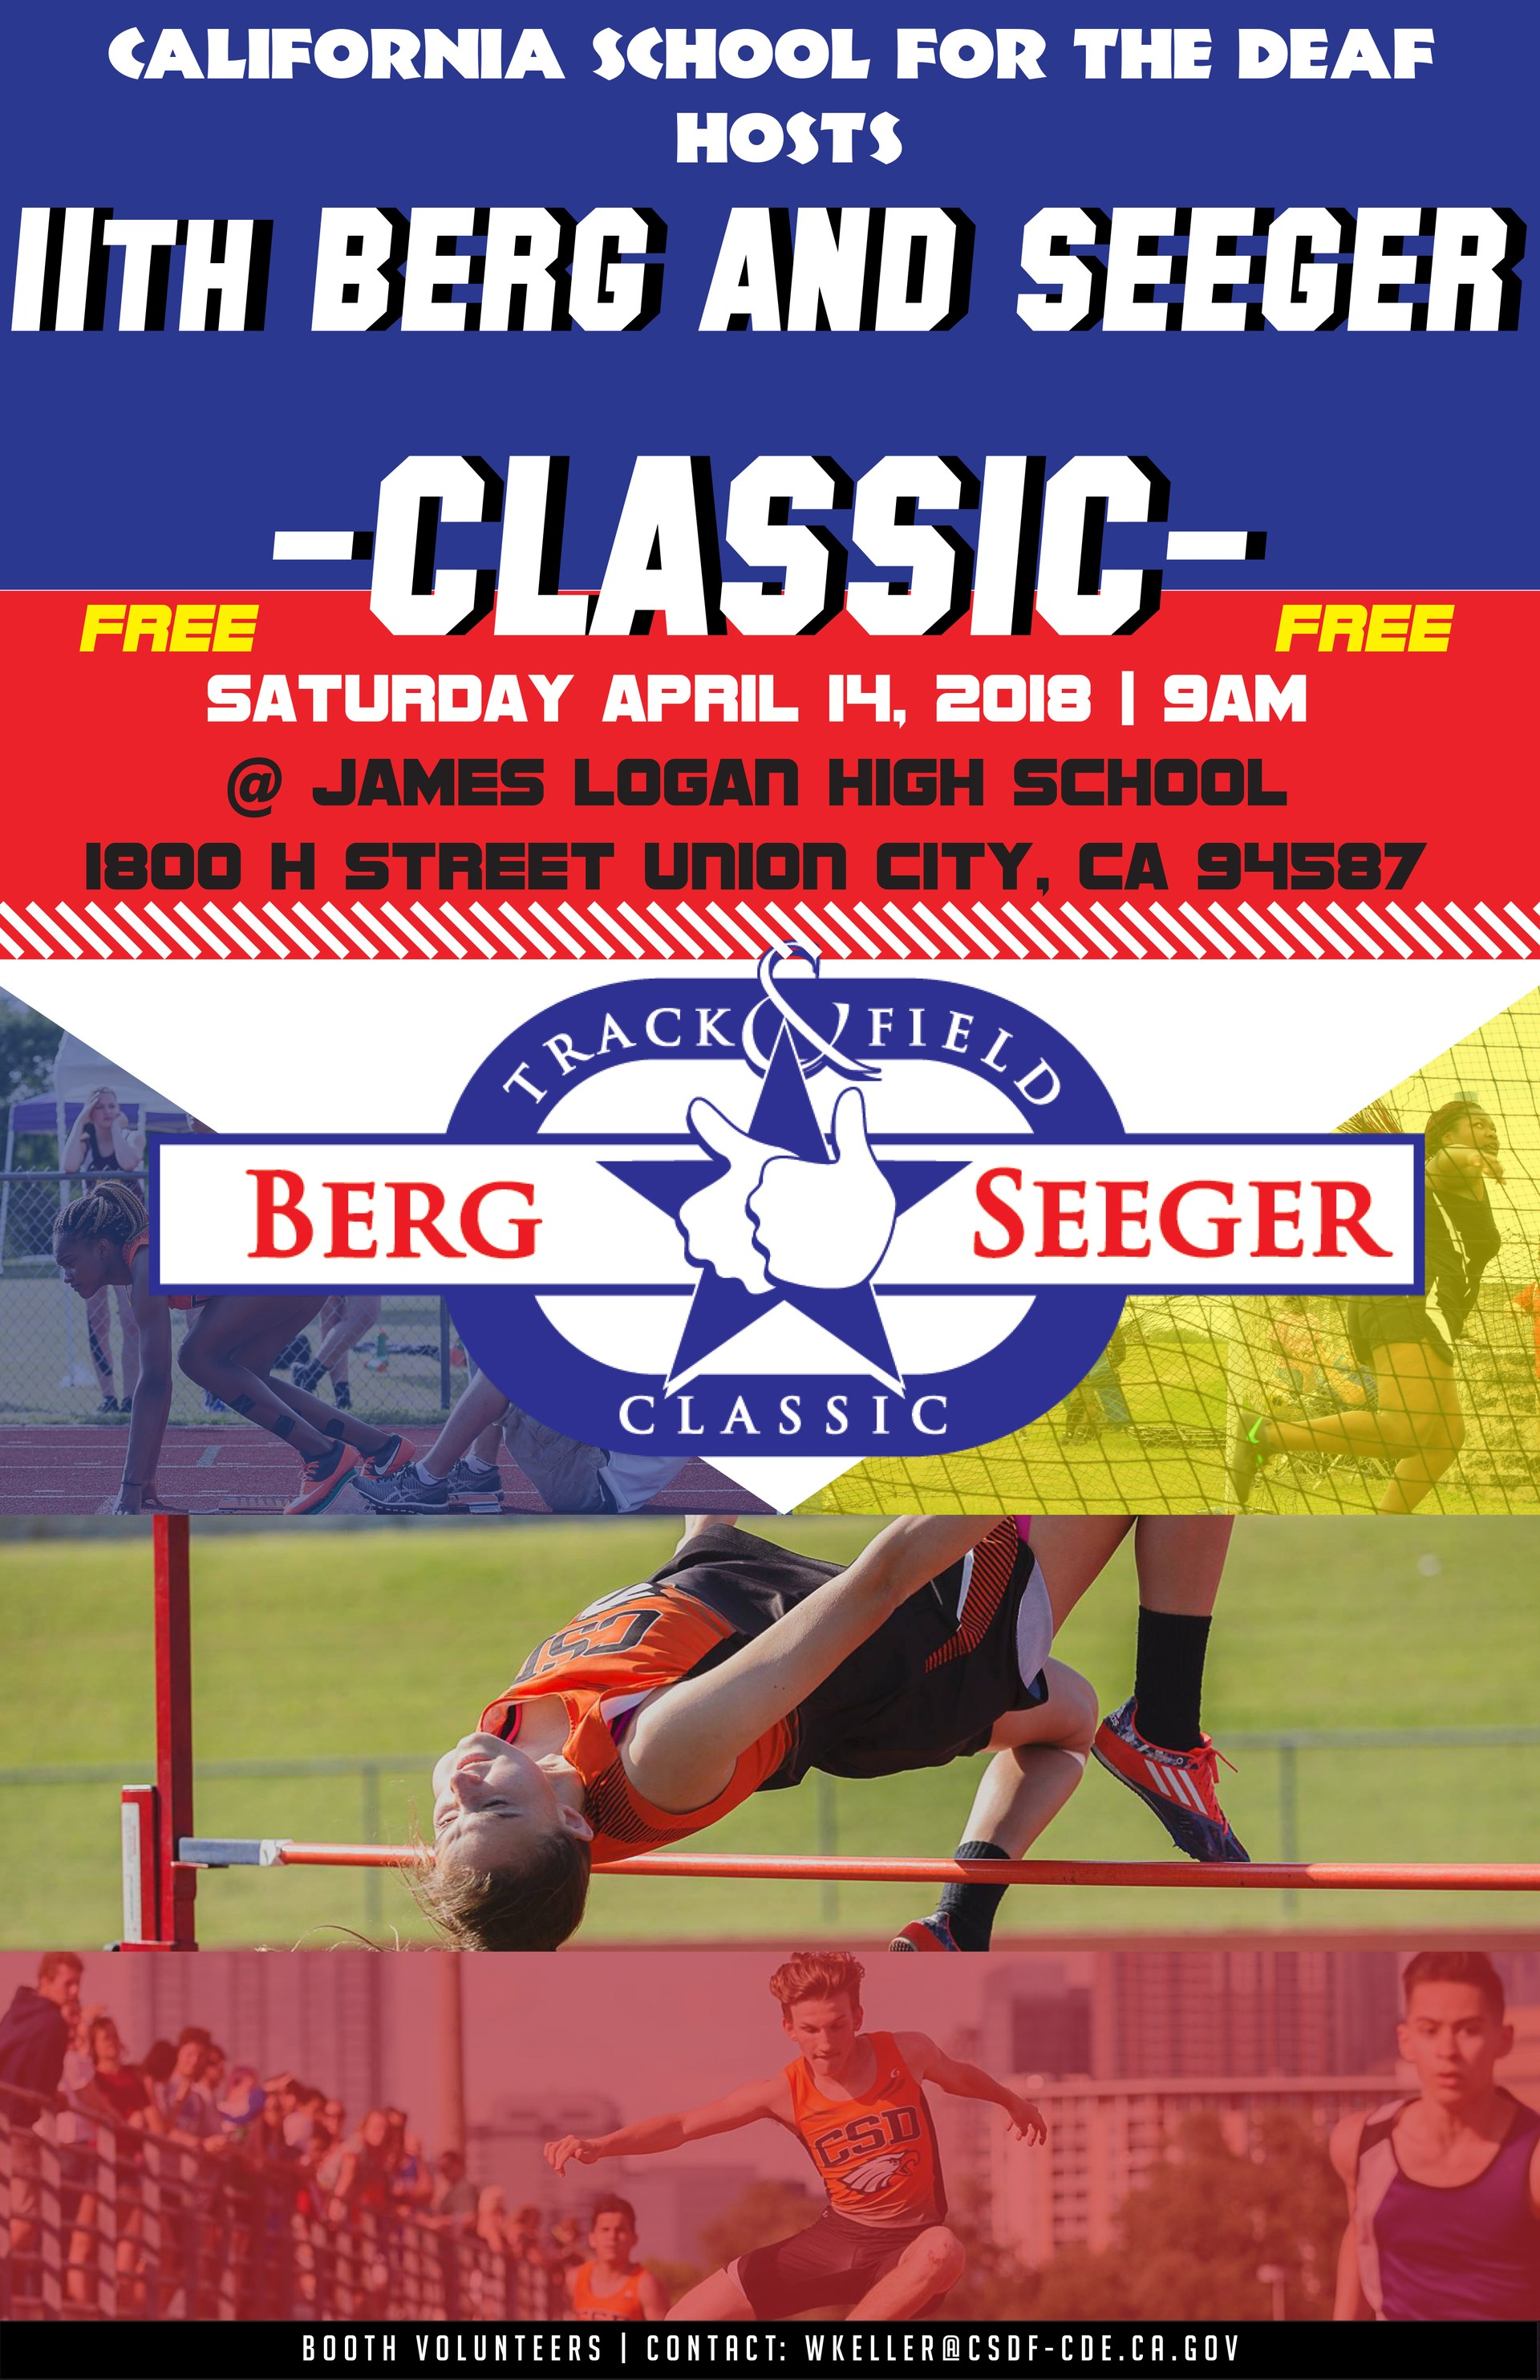 11th Berg Seeger Classic flyer